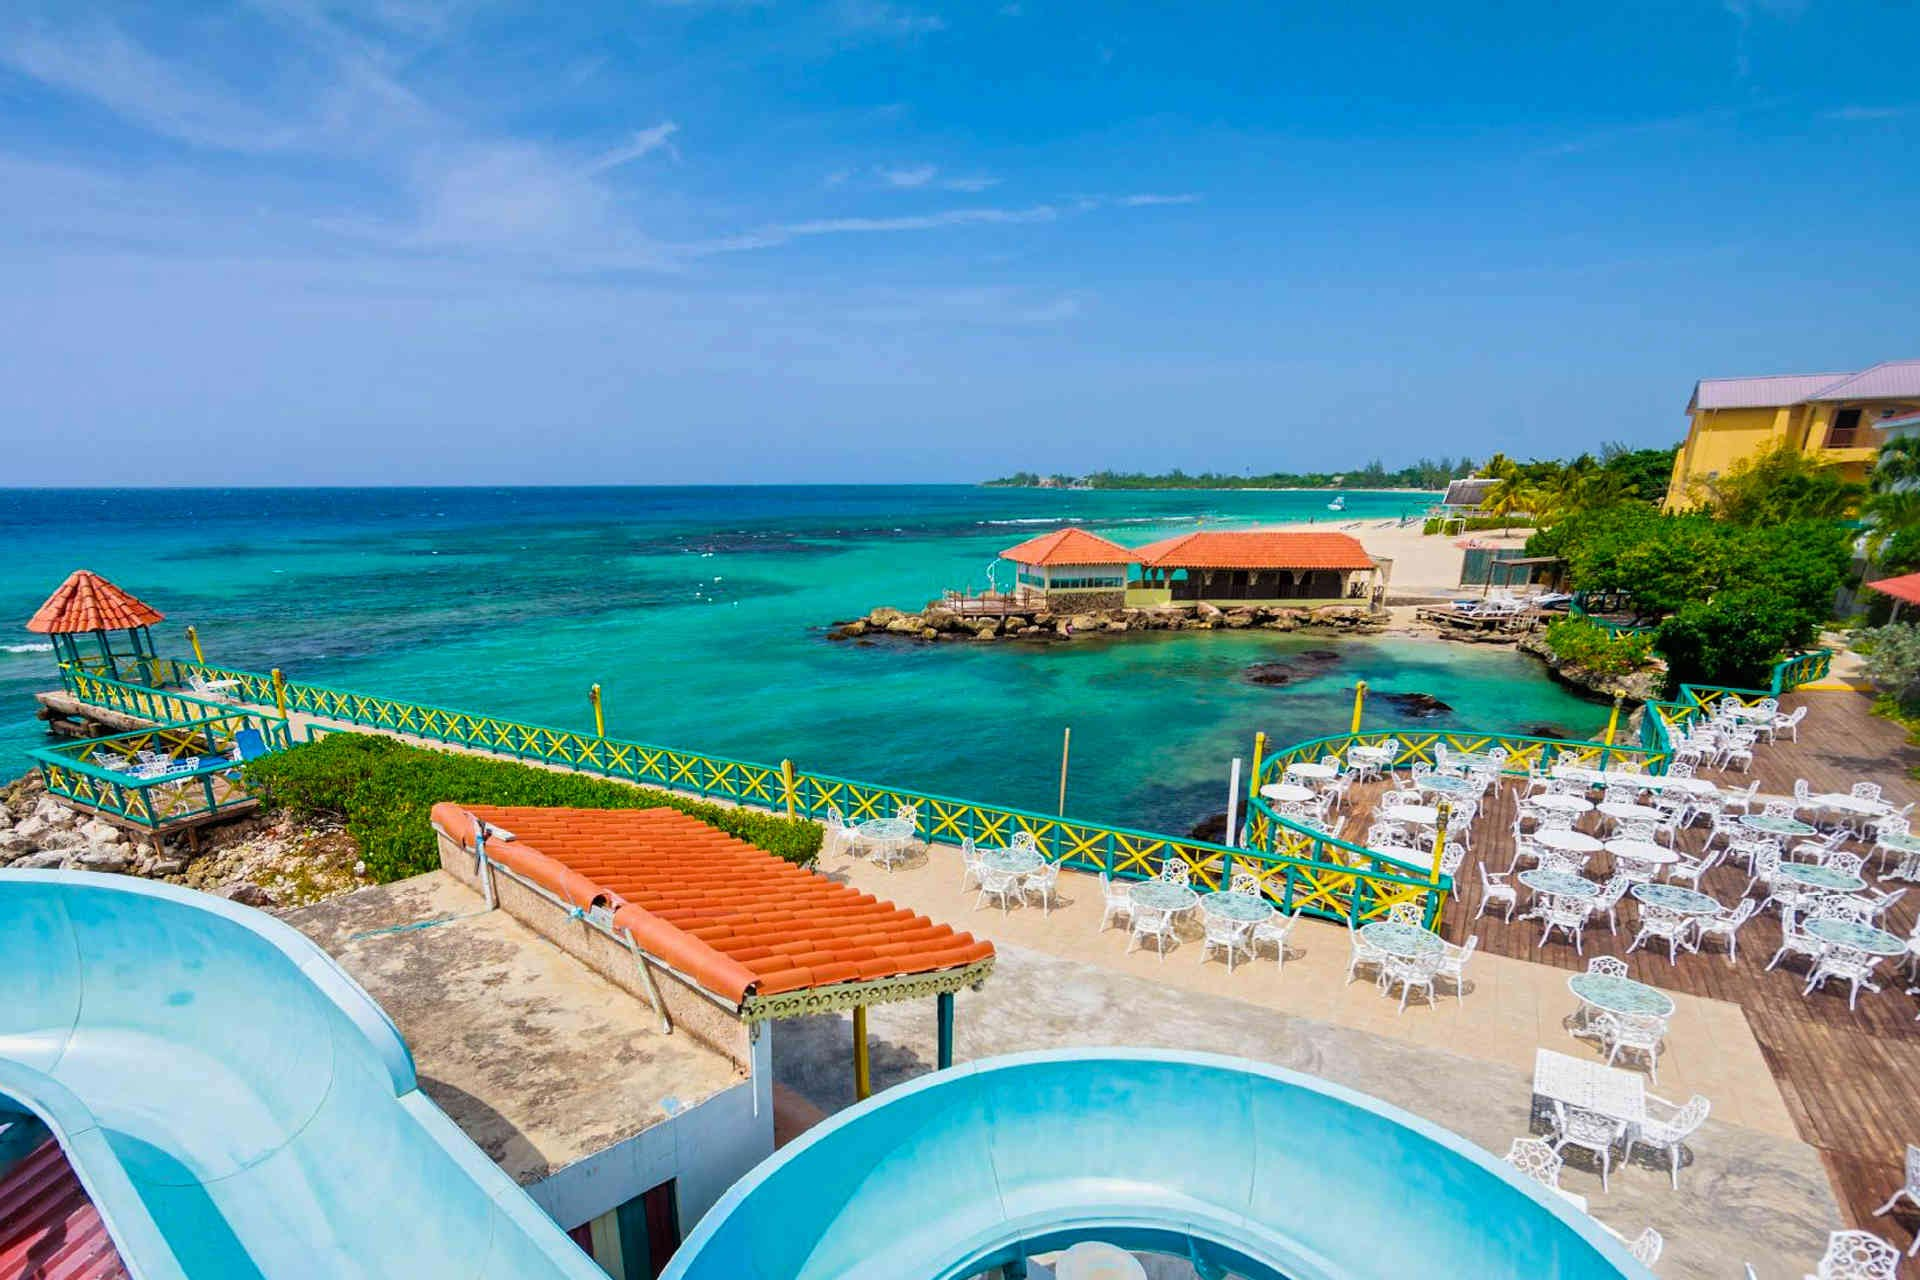 10 Best AllInclusive Caribbean Family Resorts for 2019